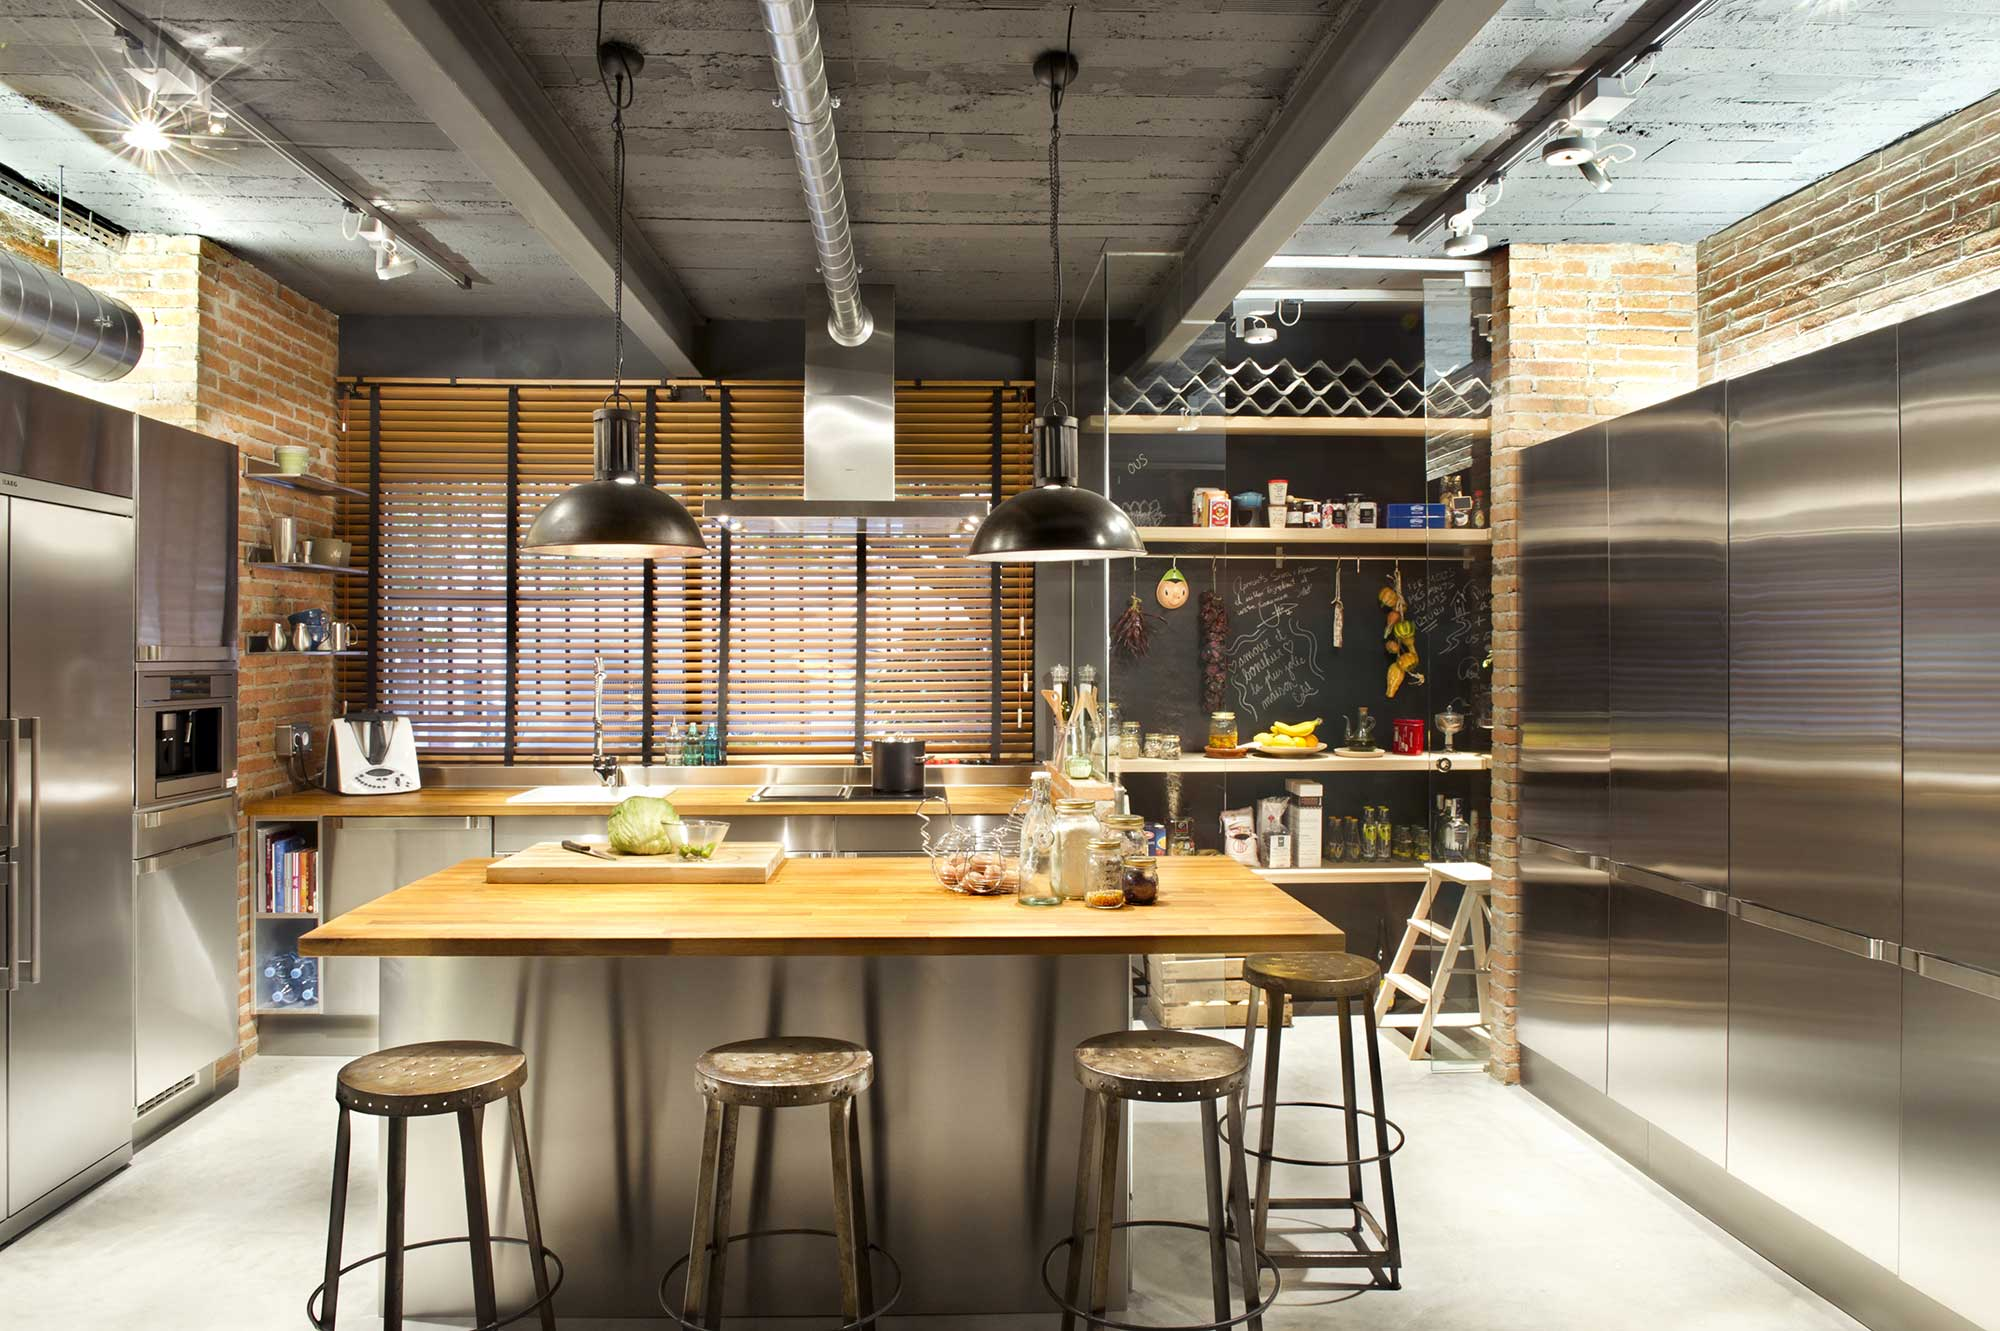 Cuisine avec ilot centrale for Industrial farmhouse plans